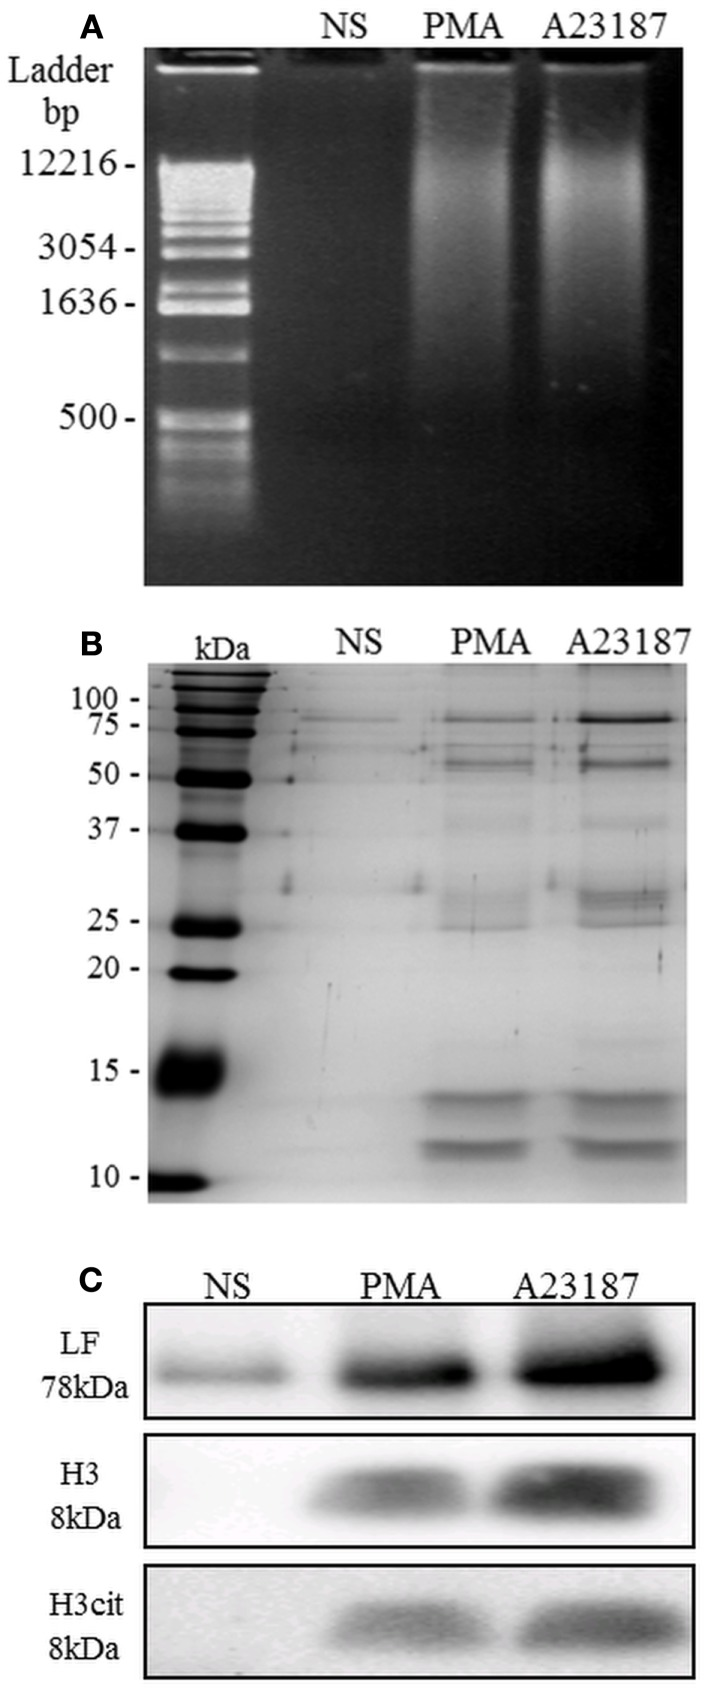 NETs are recovered after AluI treatment of activated PMN . Unstimulated PMN and PMA- or A23187-stimulated PMN were treated with the restriction enzyme Alu-I. (A) NET samples migrated on agarose gel were stained with ethidium bromide: dsDNA fragments were revealed as a smearing pattern along the gel. (B) Visualization of NET protein content by silver staining. Few proteins were observed in the untreated sample, whereas numerous proteins were observed in PMA- and A23187-NET samples, with similar profiles. (C) Identification of three specific NET proteins (LF, H3, and cit-H3) by immunoblotting. Cit-H3 is a signature of netosis. These experiments were repeated at least six times with PMN from different healthy controls.